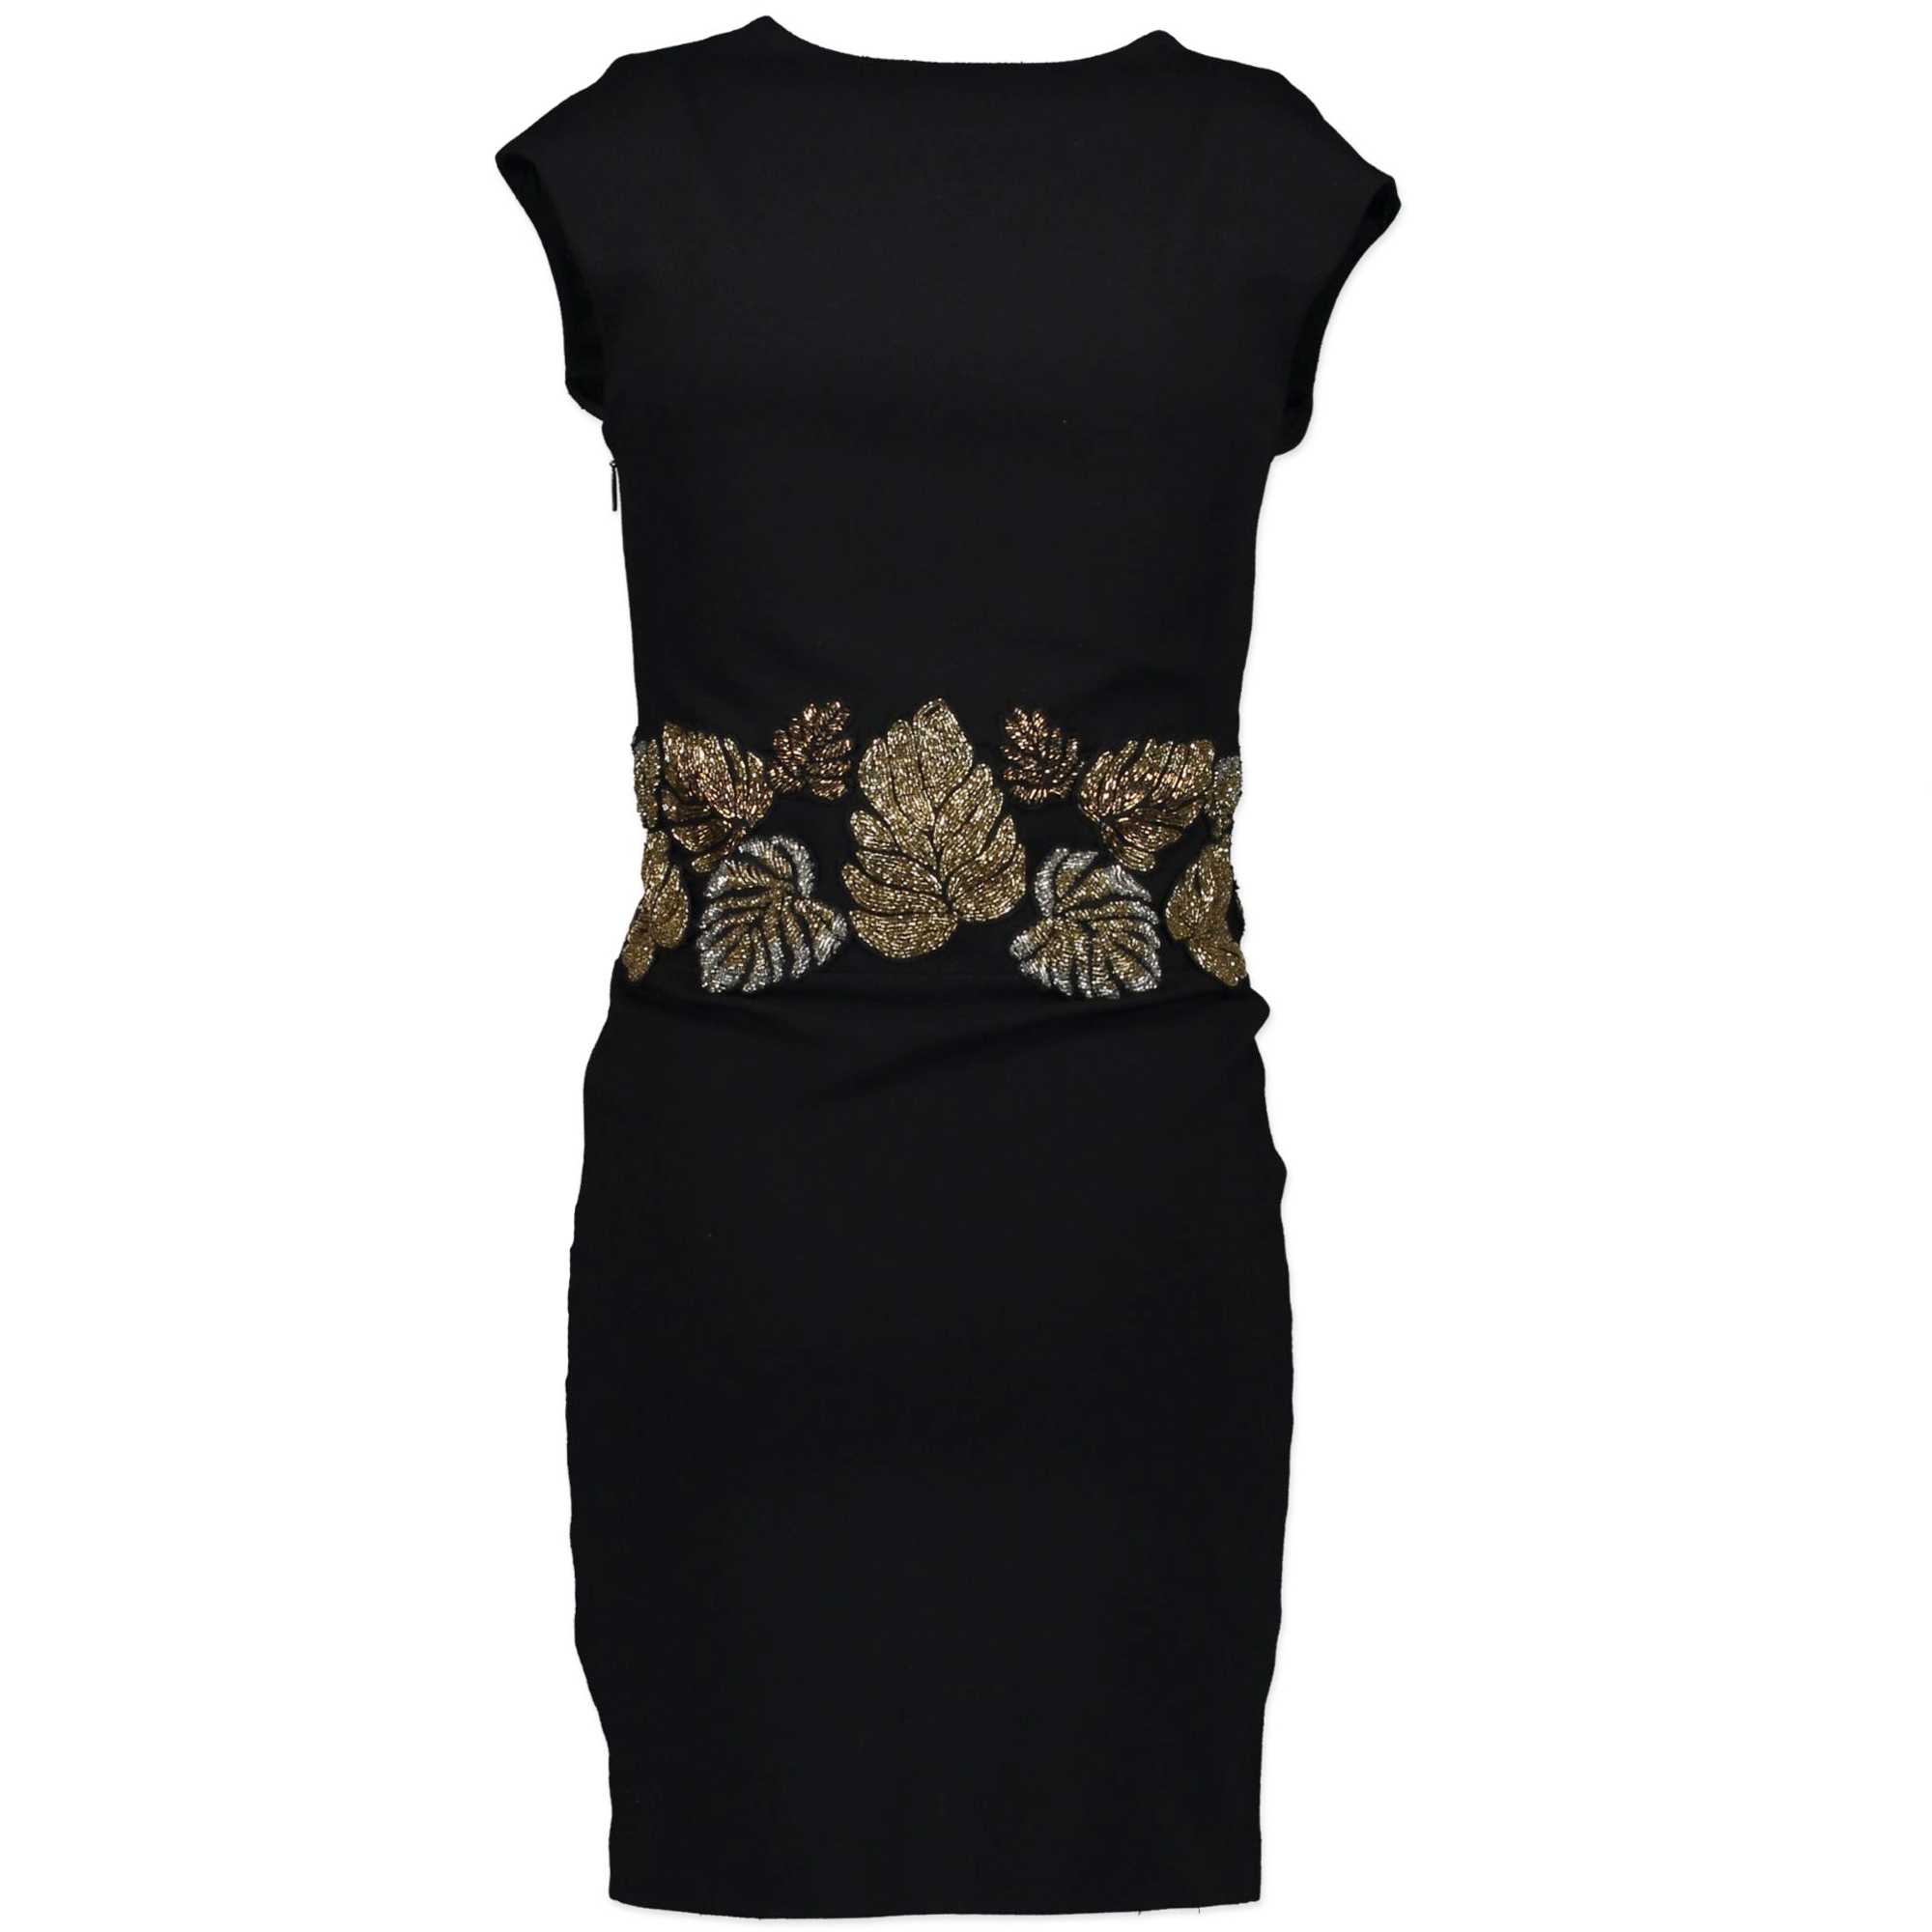 Roberto Cavalli Black Dress - Size XS/S for the best price available online at Labellov